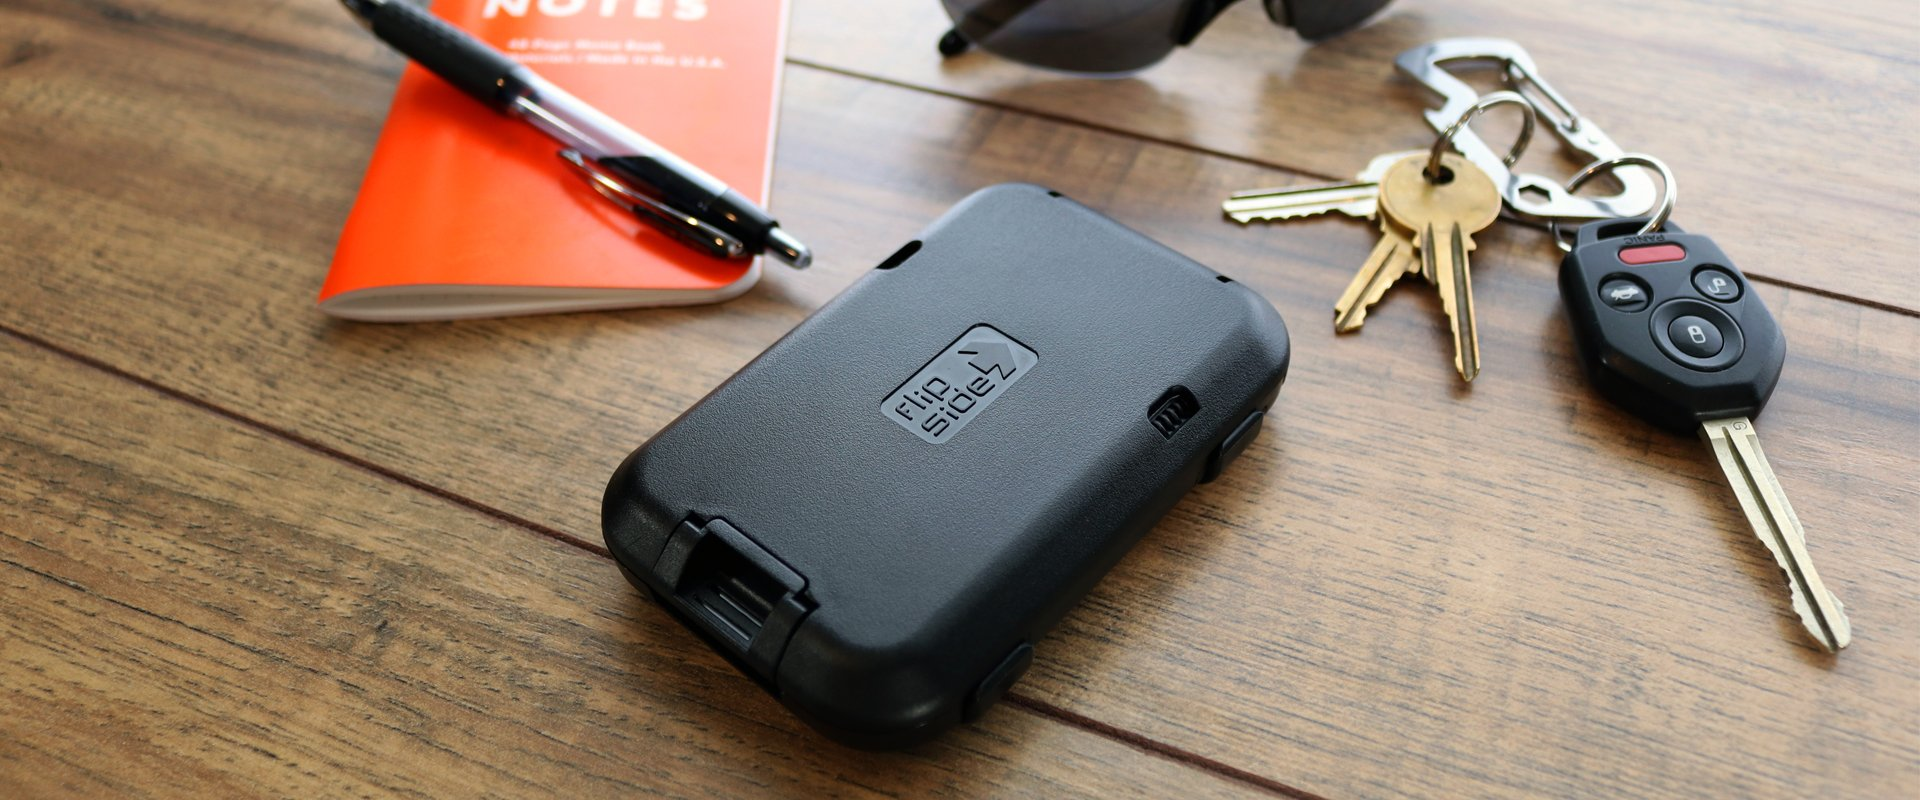 The flipside wallet is also a crush resistant hardcase wallet that protects your cards from damage